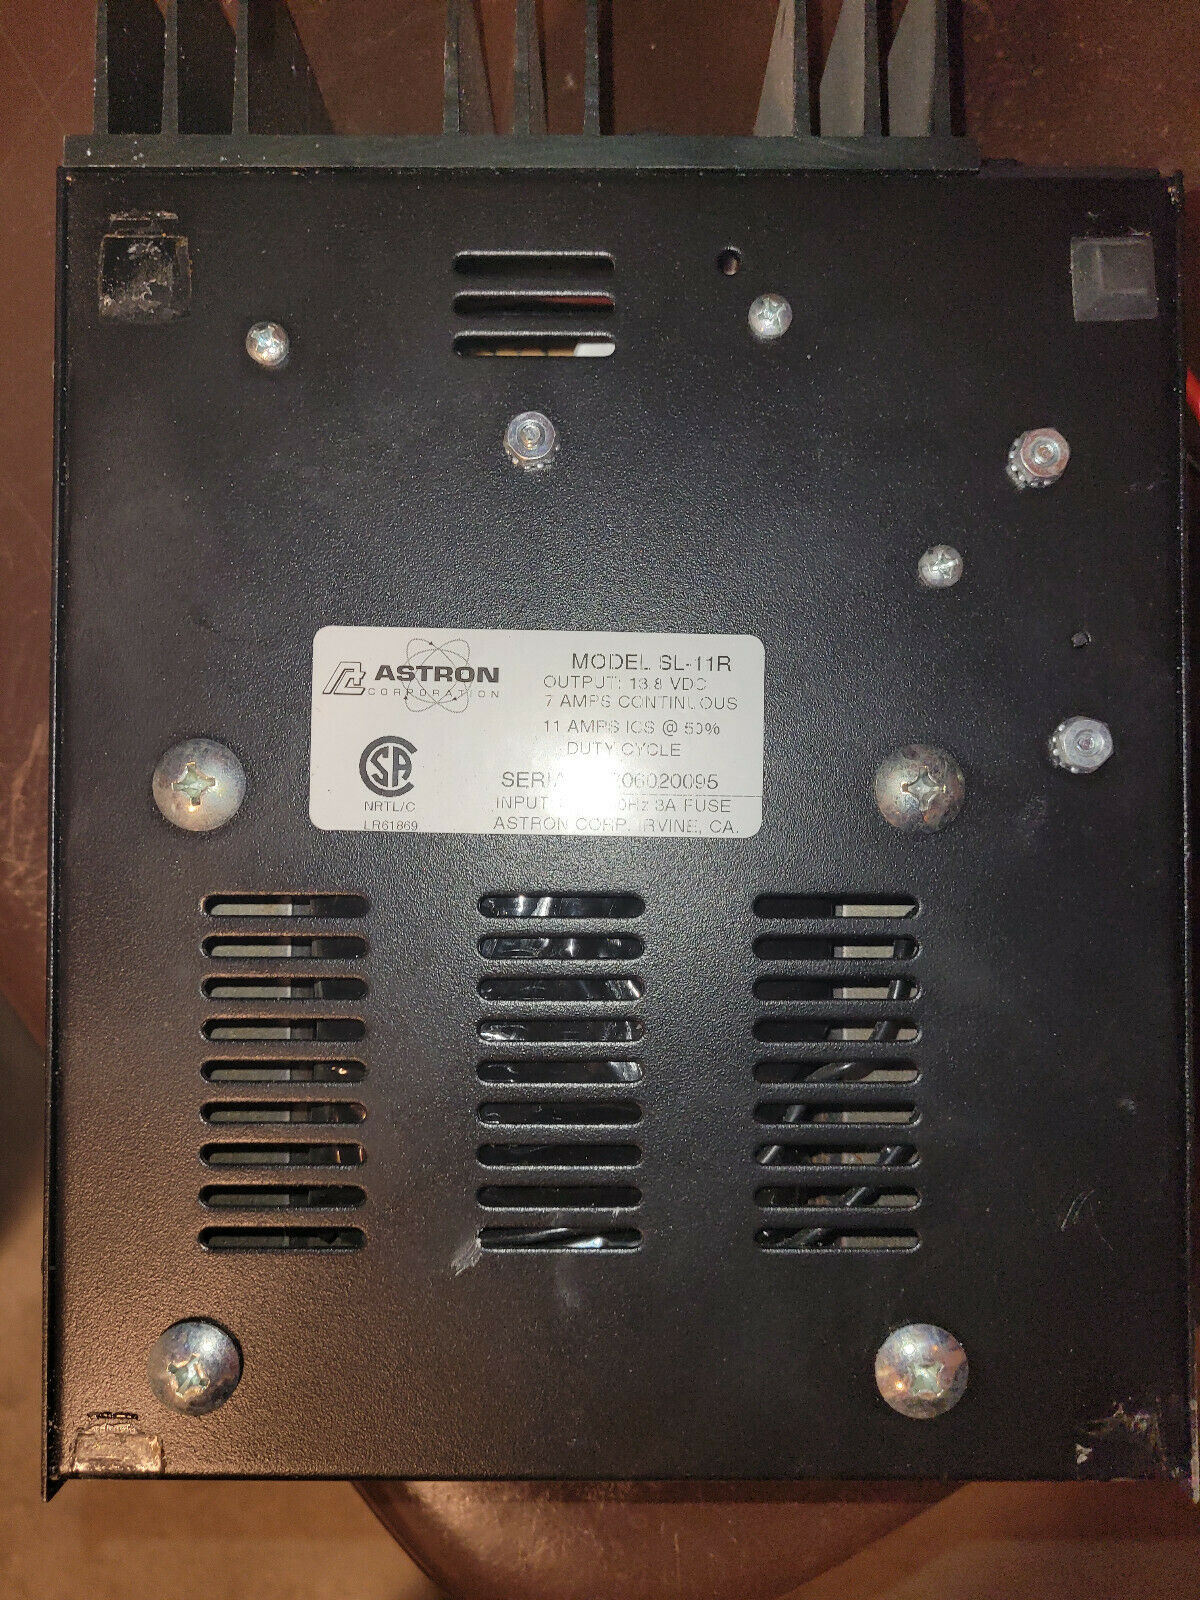 Astron SL-11R Compact Table Top 11 Amp Regulated DC Power Supply Working. Available Now for 49.99